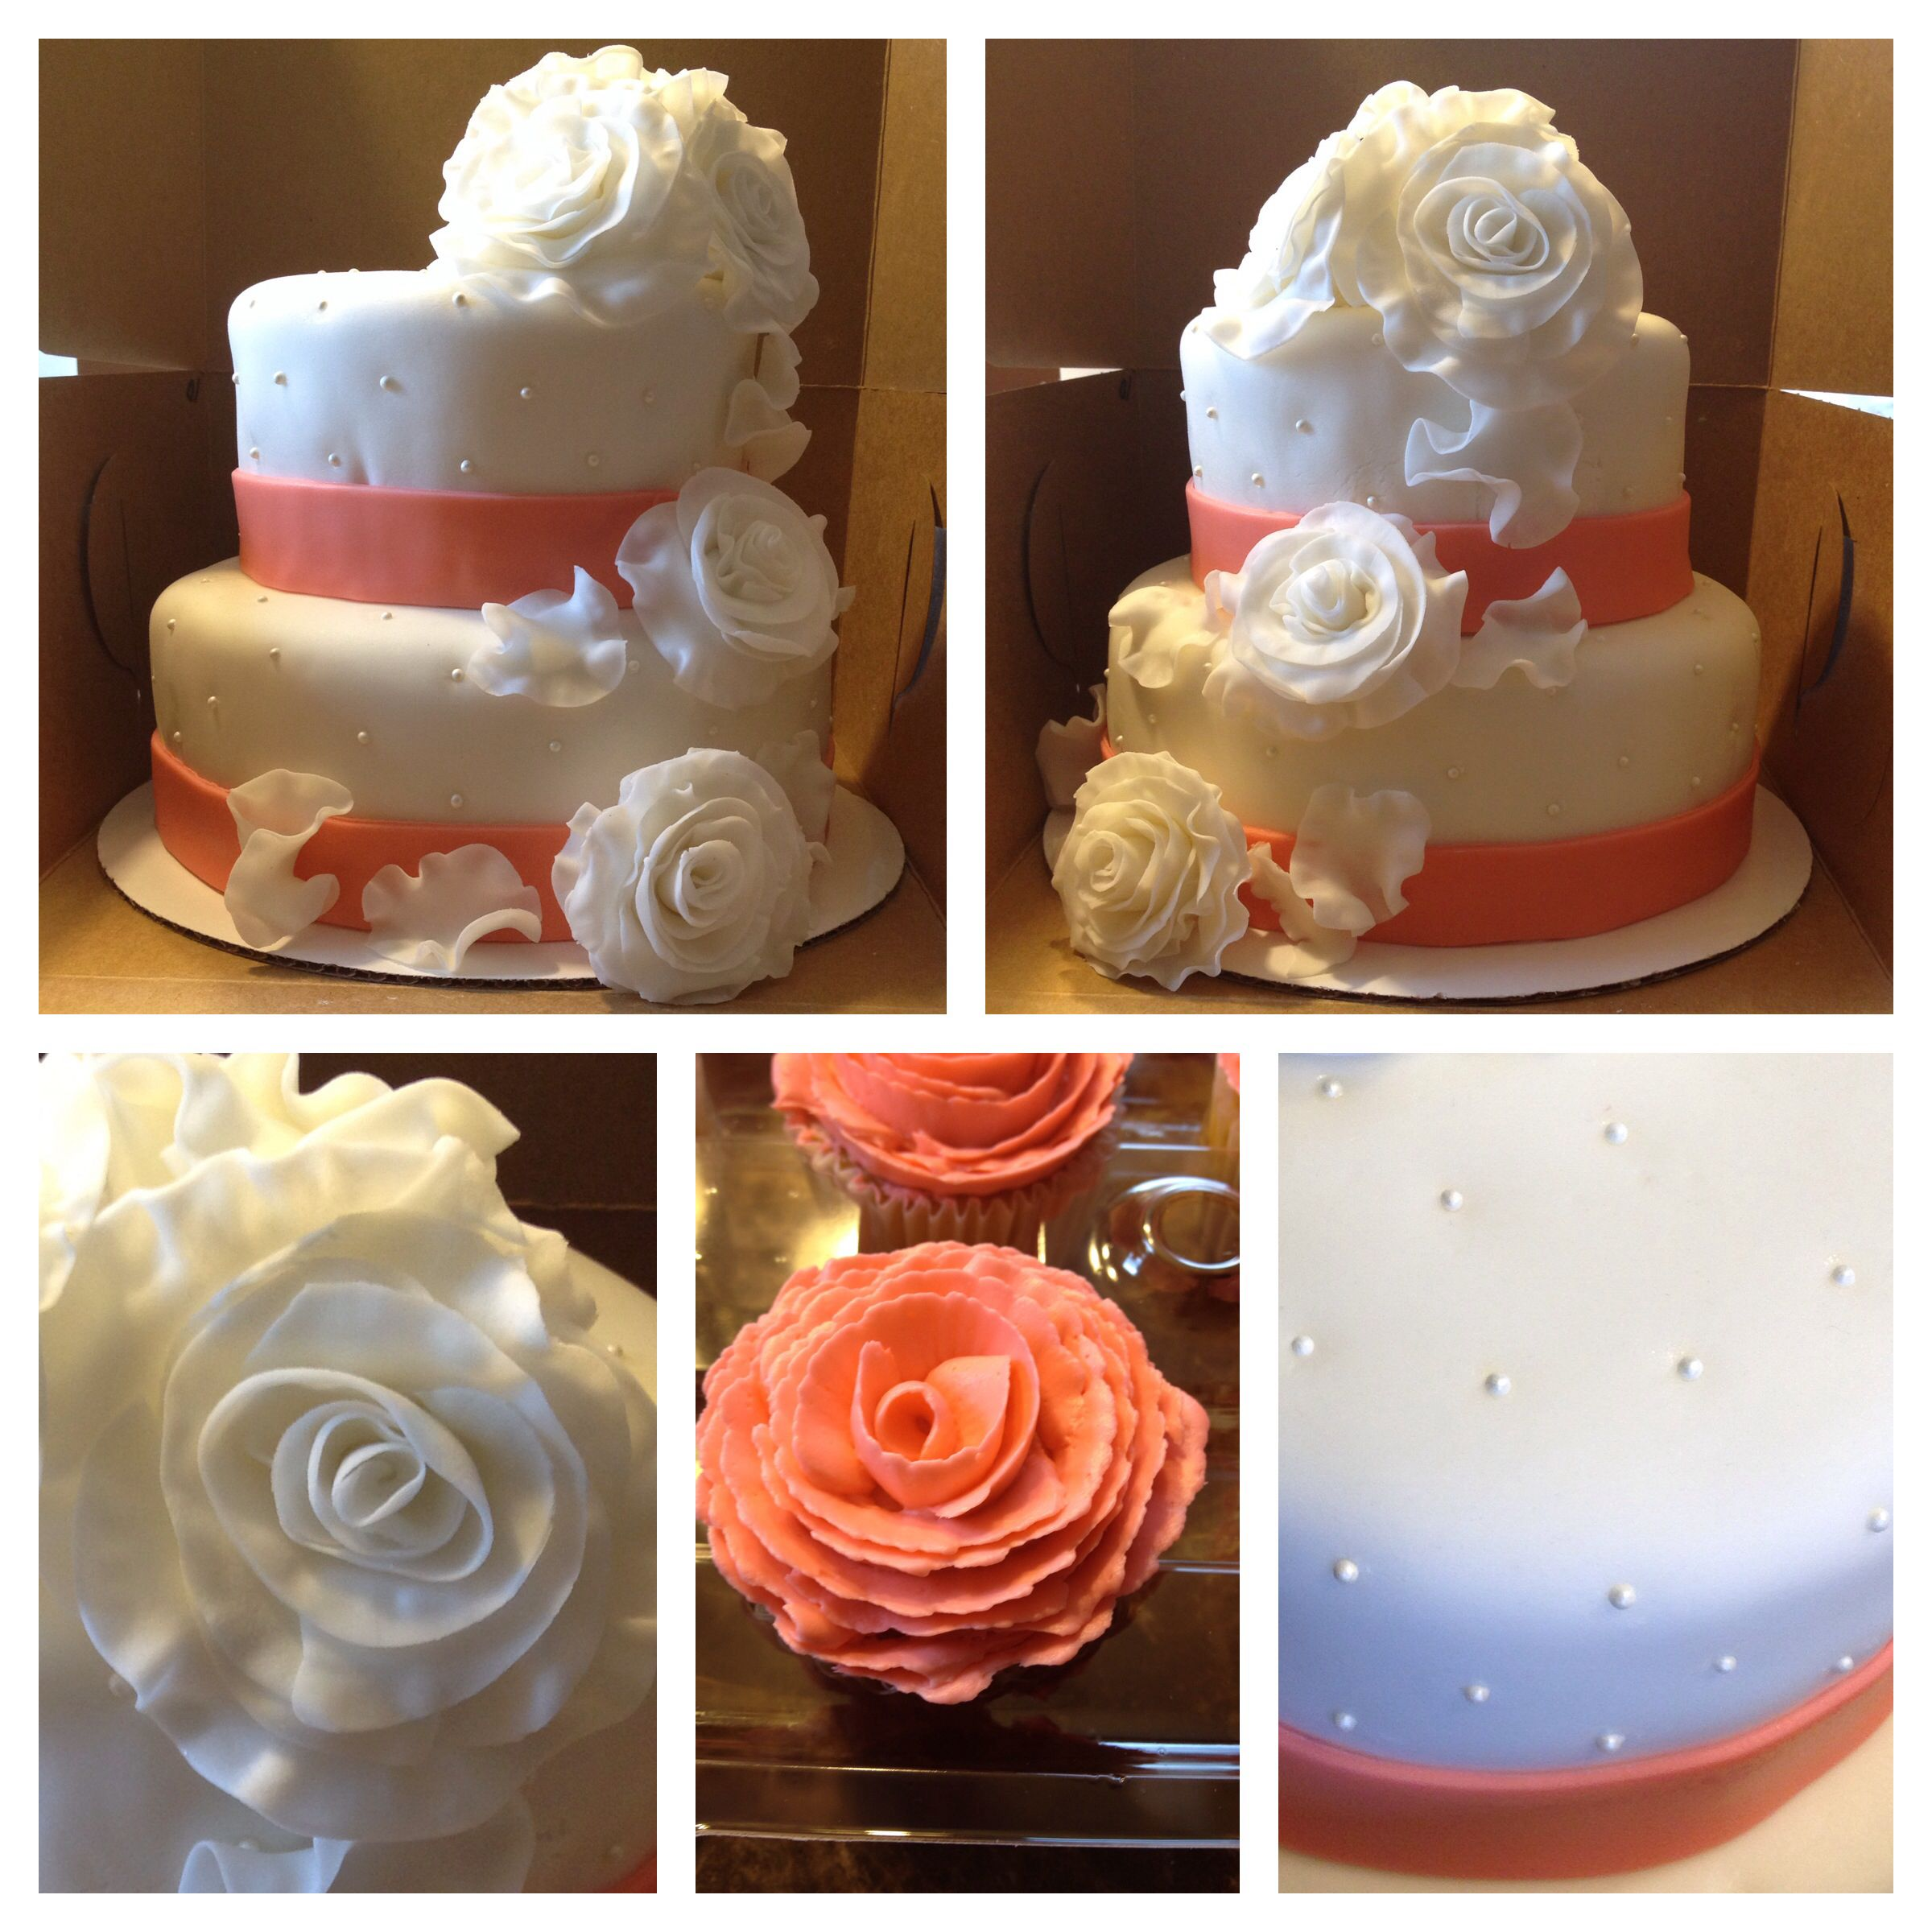 Fondant Flowers For Wedding Cakes: Wedding Cake! Coral Ribbon With Fondant Flowers. Coral